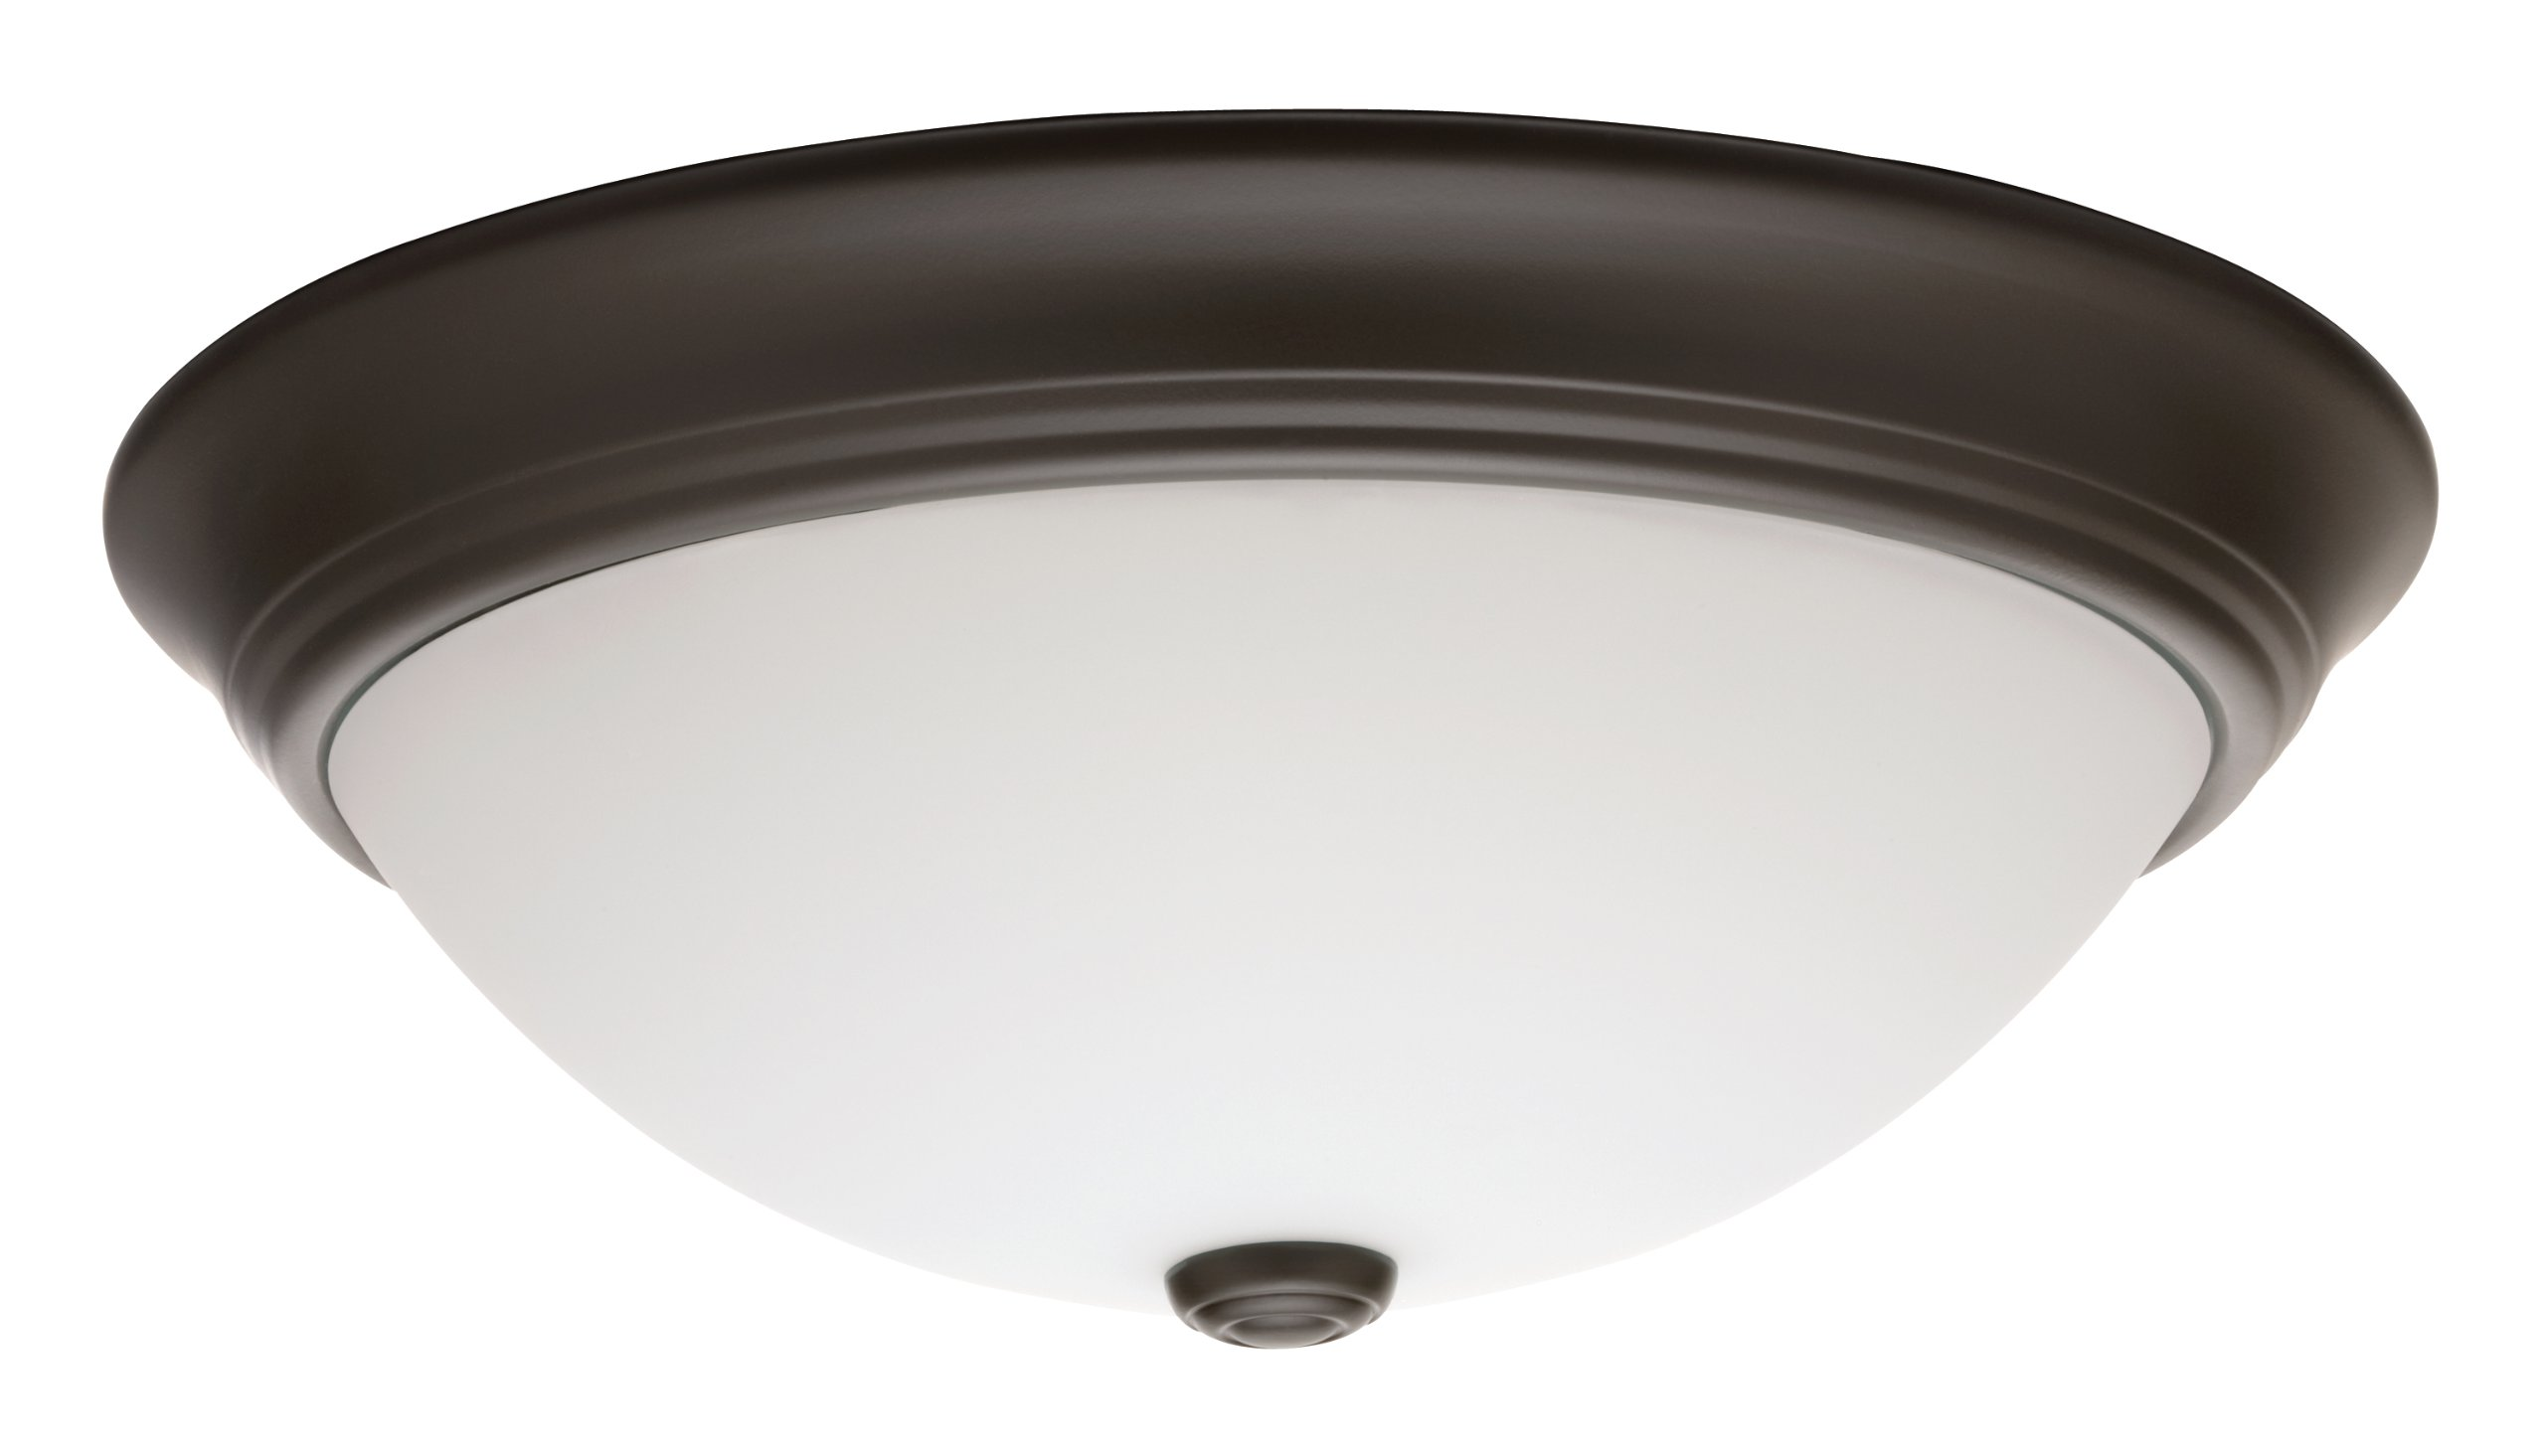 Lithonia Lighting 11983 BZ M2 DÃcor Round Flush